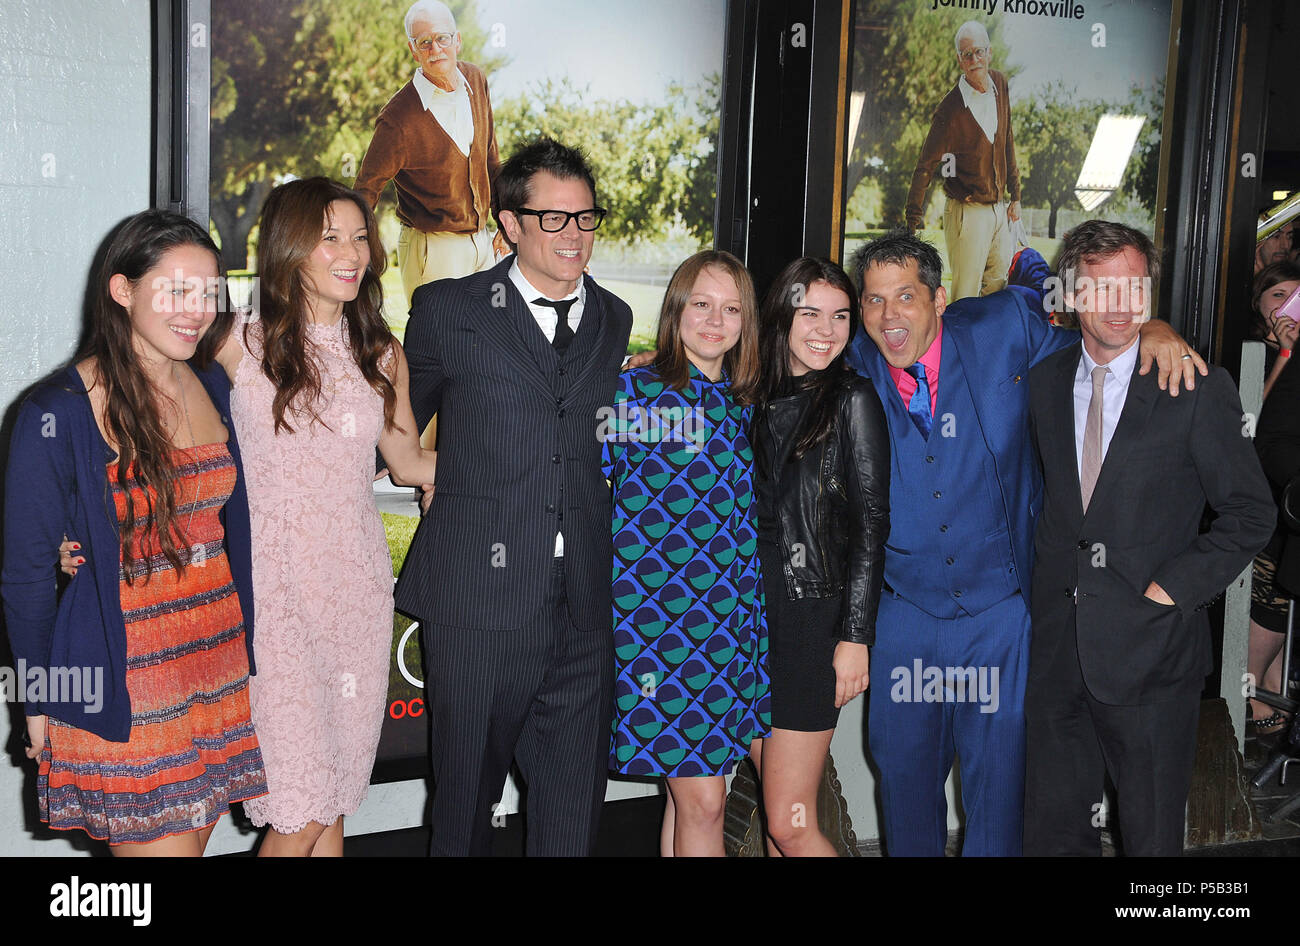 Johnny Knoxville wife and cast at the Bad GranPa Premiere at